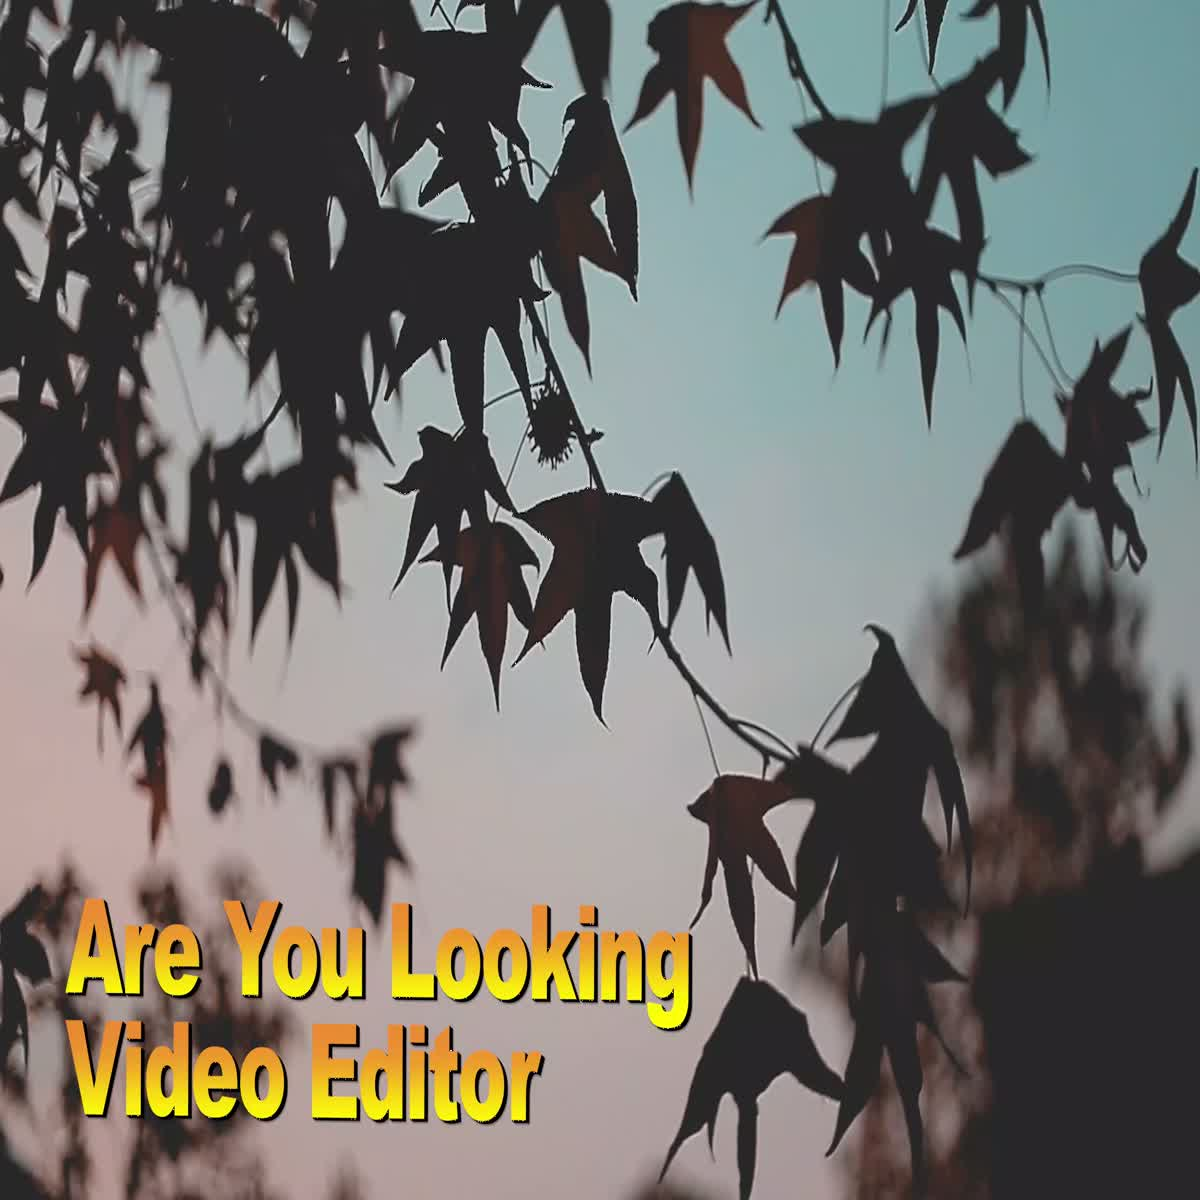 YouTube Intro Maker & YouTube Video Editor do professional video editing For All Kind Of Videos